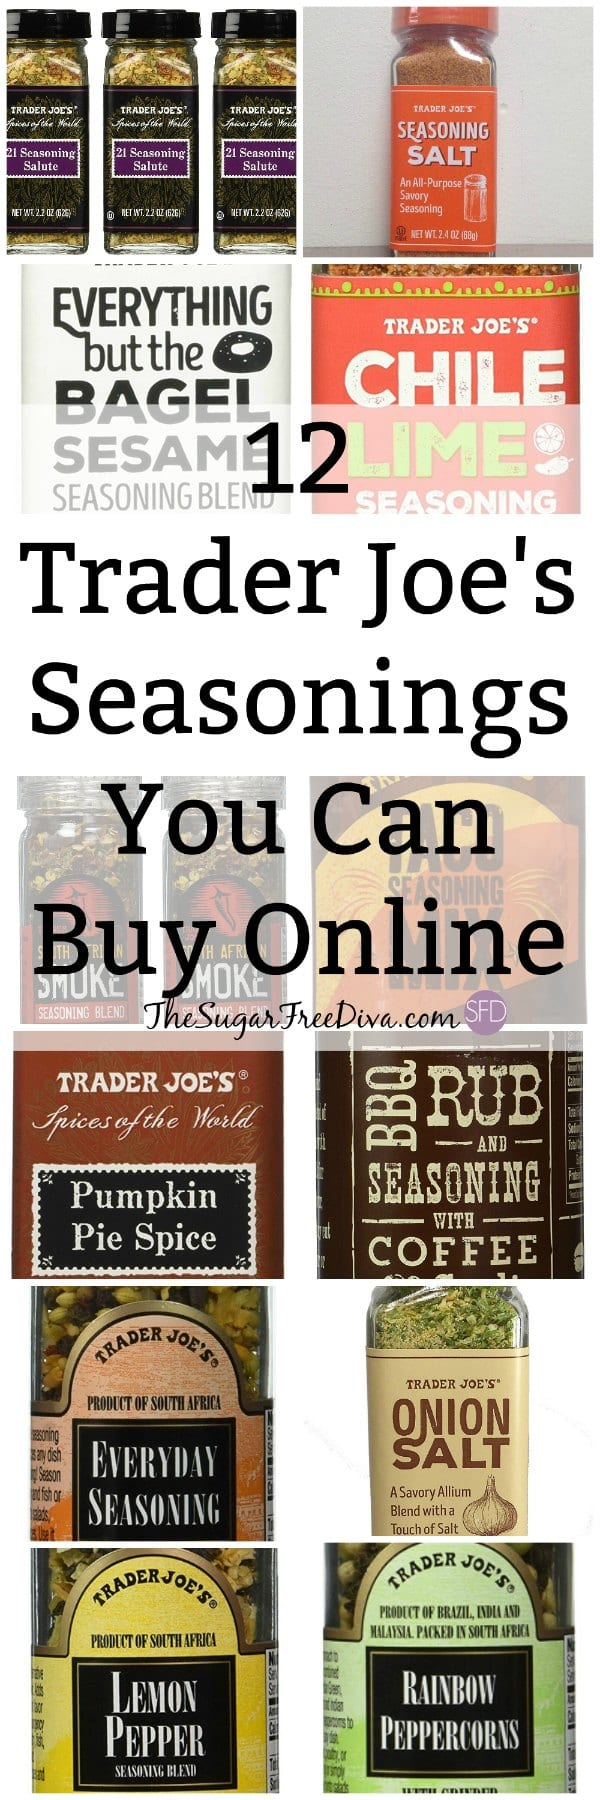 Here are the Trader Joe\'s Seasonings You Can Buy Online